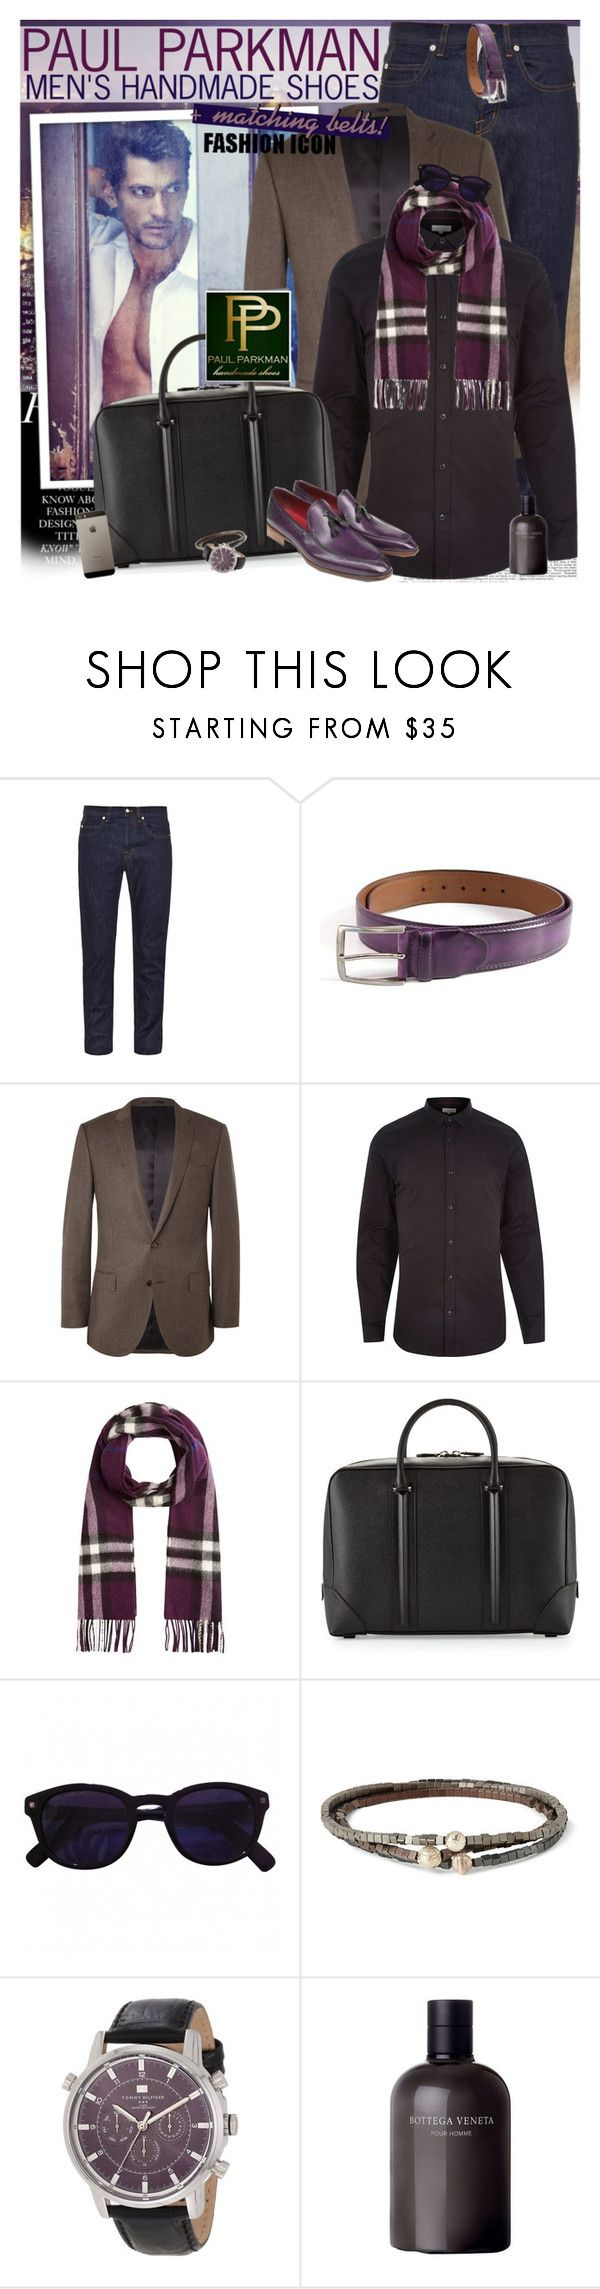 """""""Luxurious belts and shoes for men - PAUL PARKMAN"""" by vn1ta ❤ liked on Polyvore featuring KEEP ME, McQ by Alexander McQueen, J.Crew, River Island, Burberry, Givenchy, Dsquared2, Luis Morais, Tommy Hilfiger and Bottega Veneta"""